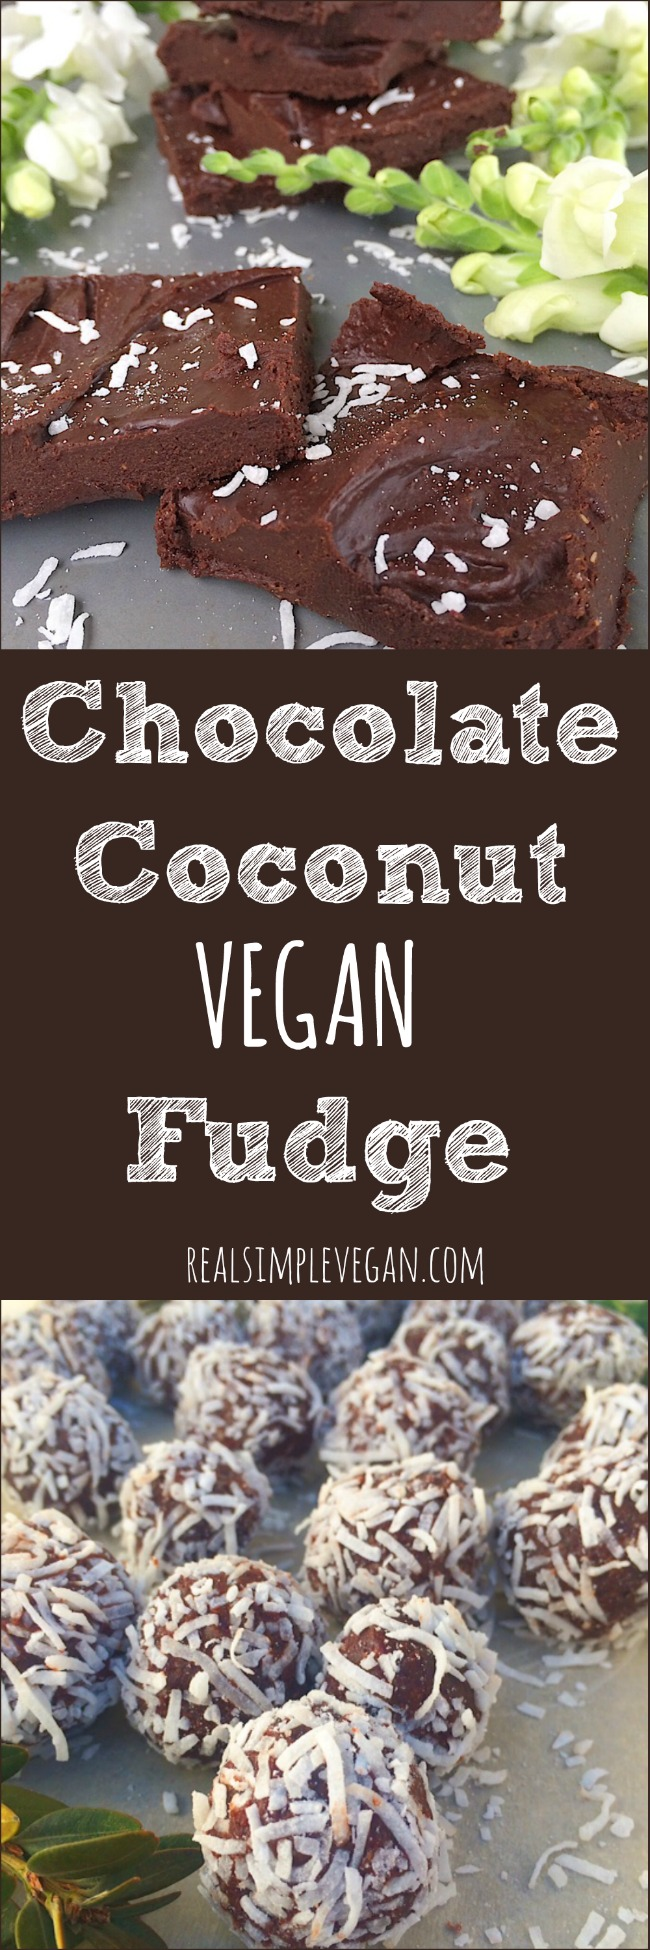 Vegan Chocolate Coconut Fudge